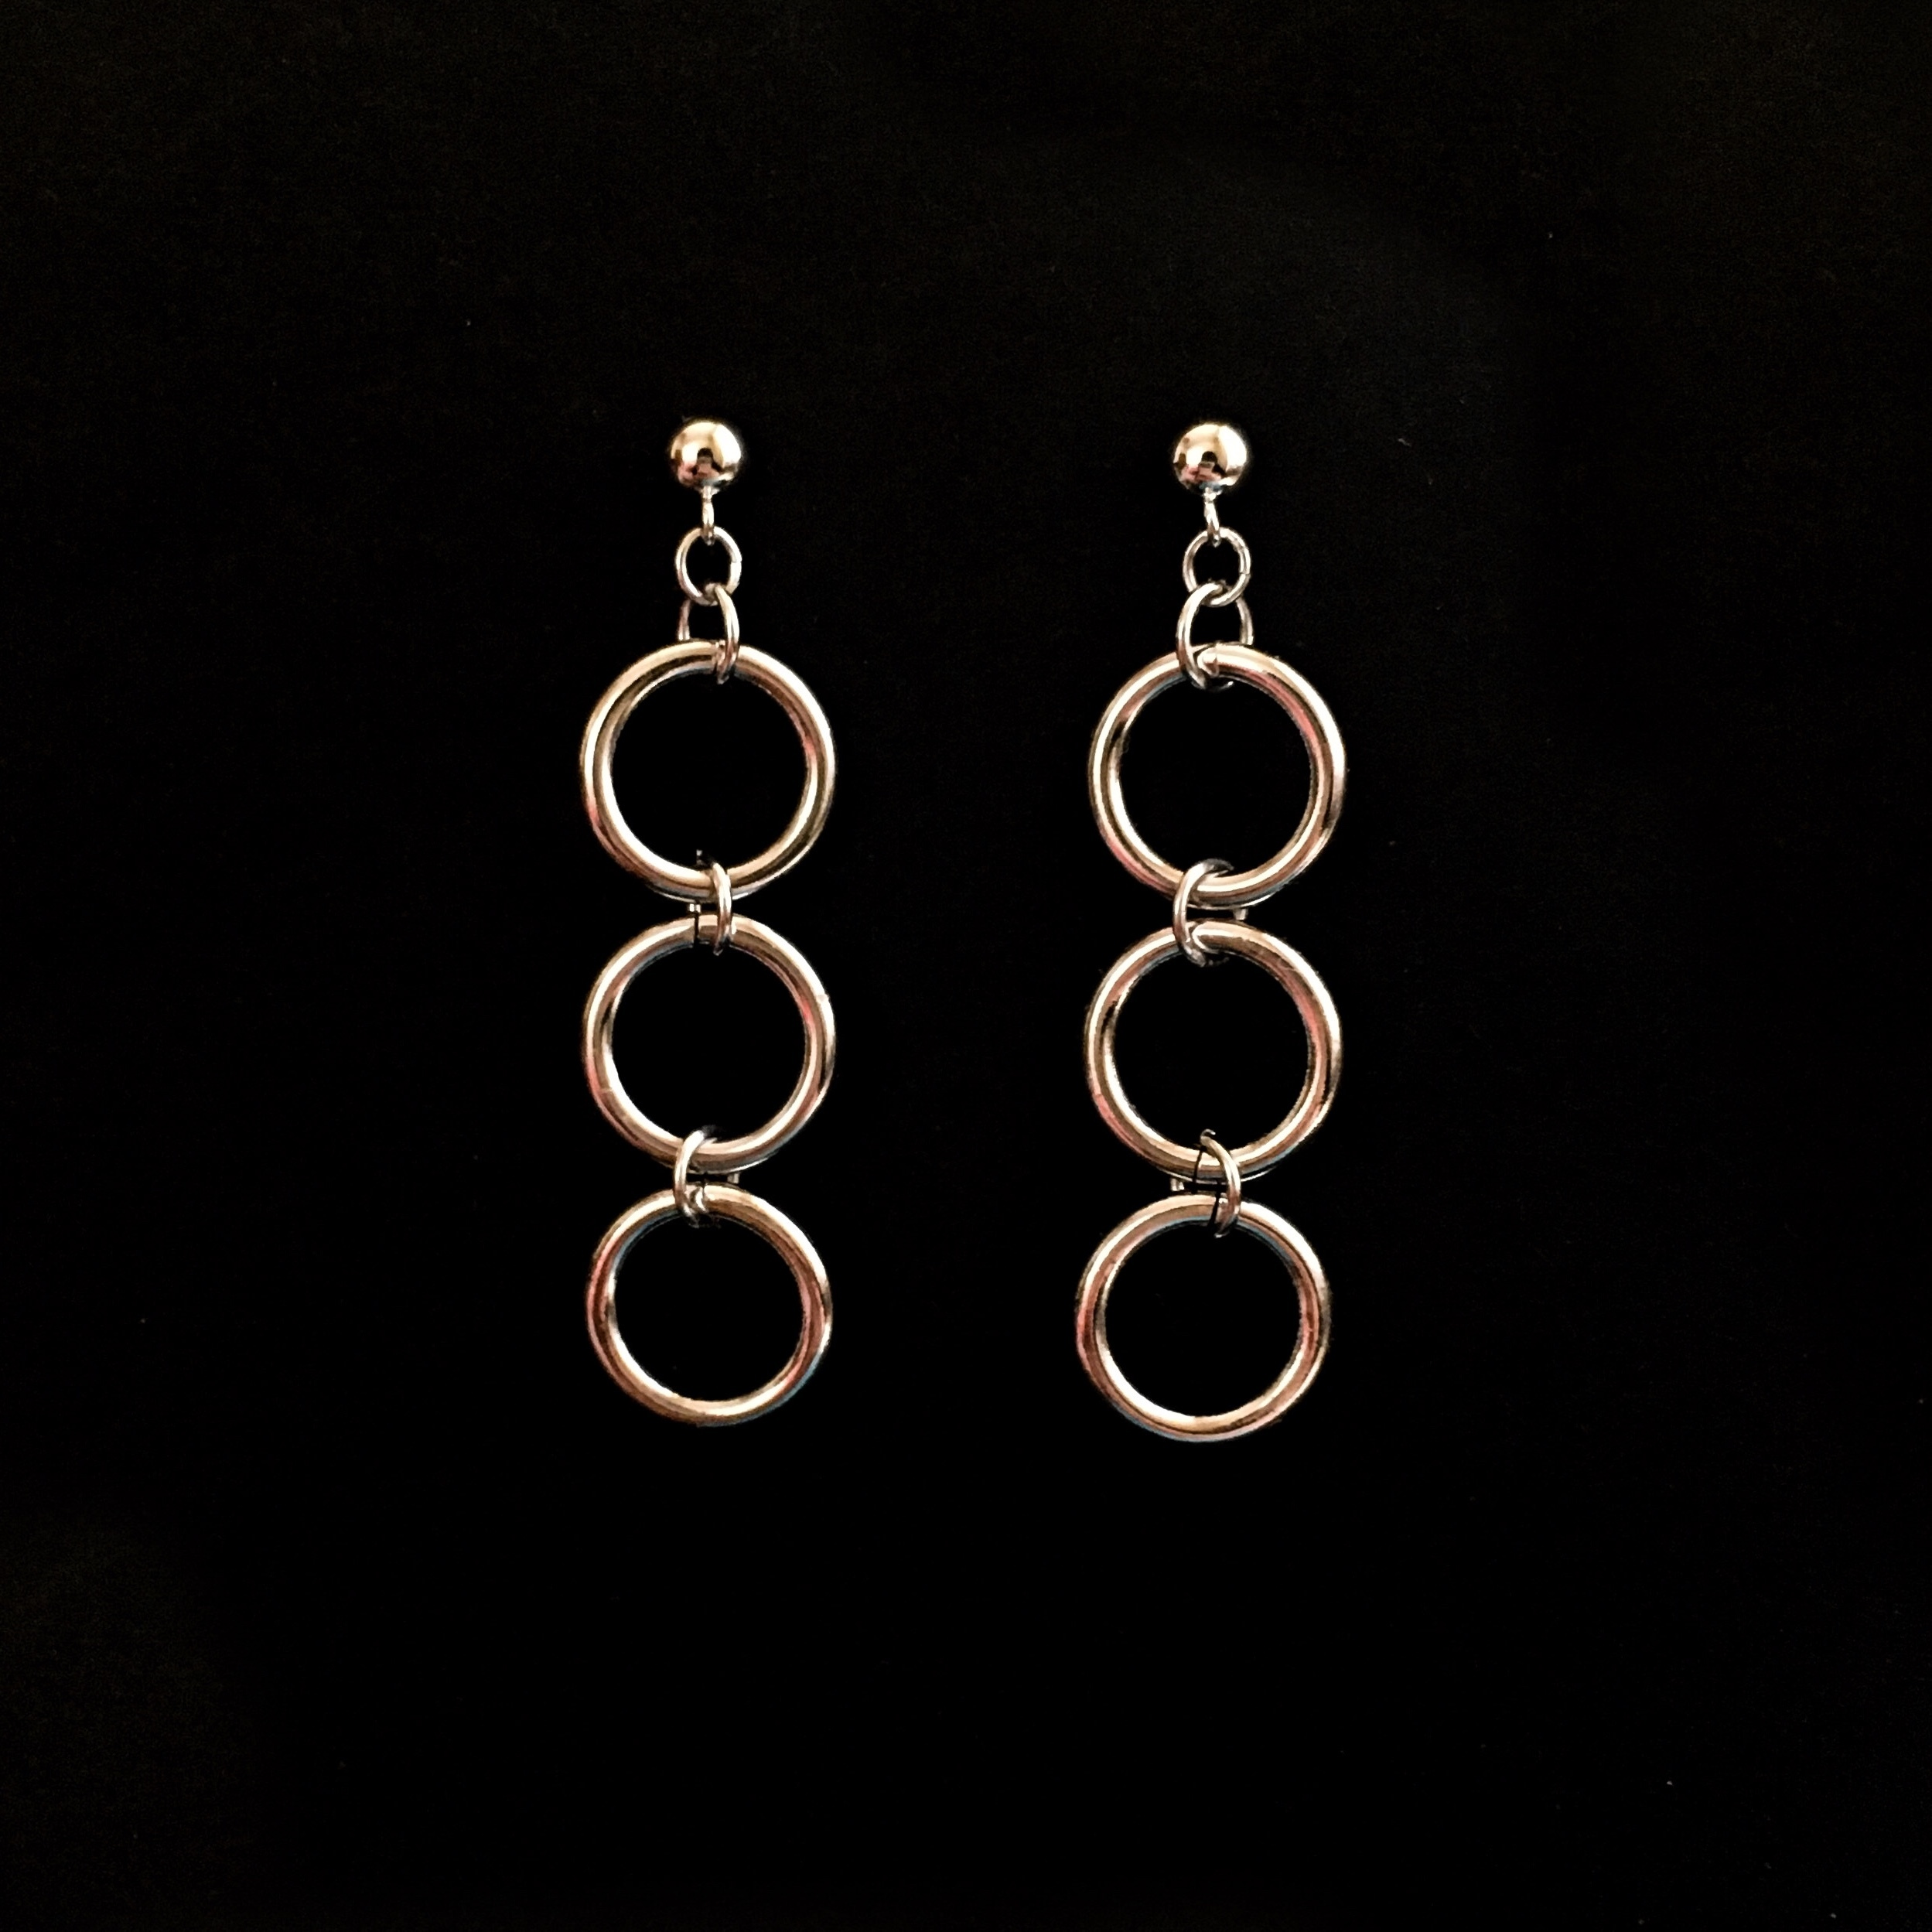 E-47 pierce/earring